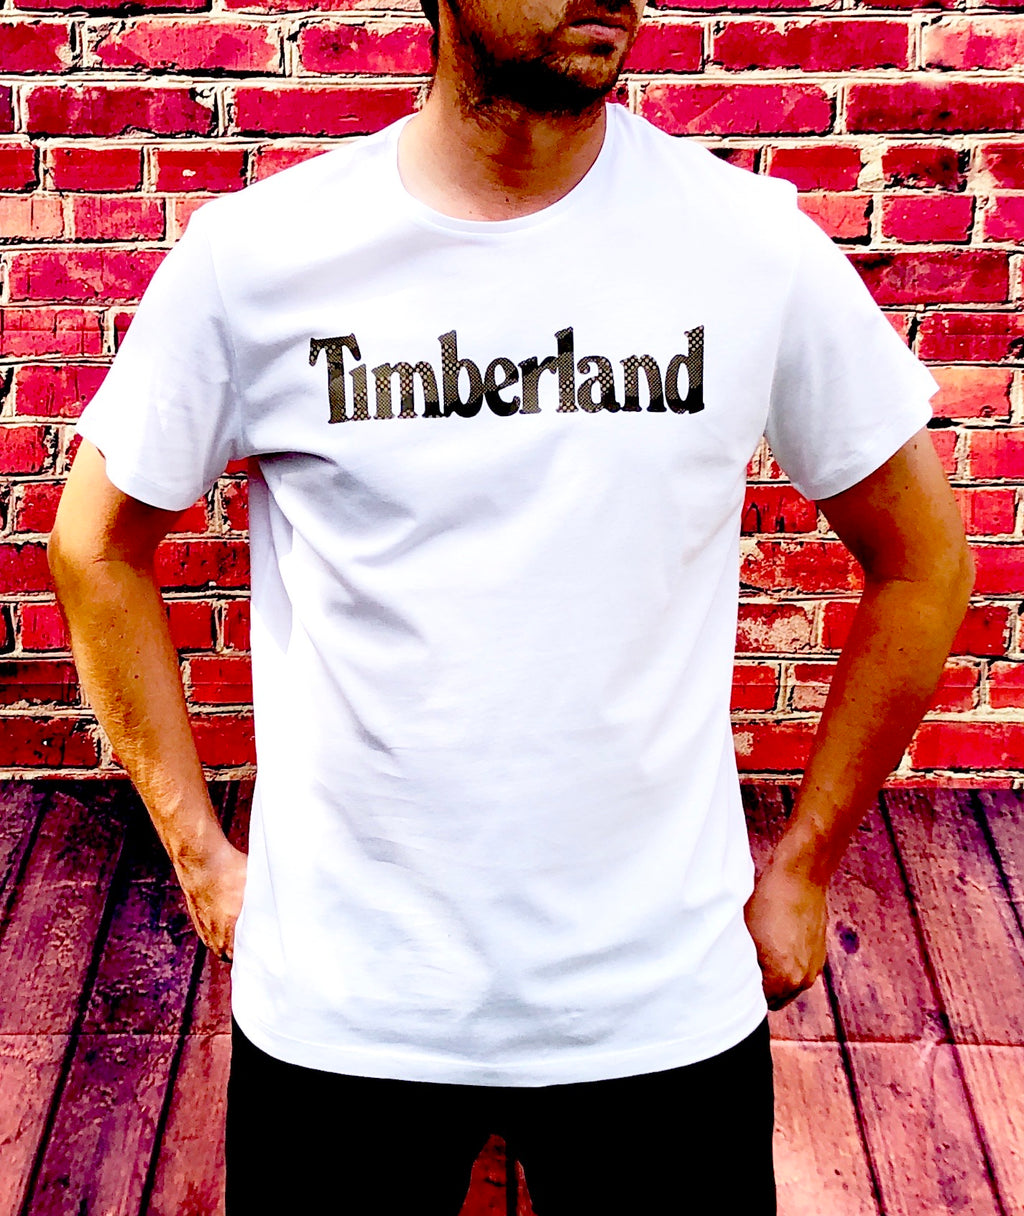 White Timberland round-neck tee shirt / Tshirt, with large, printed logo across the chest